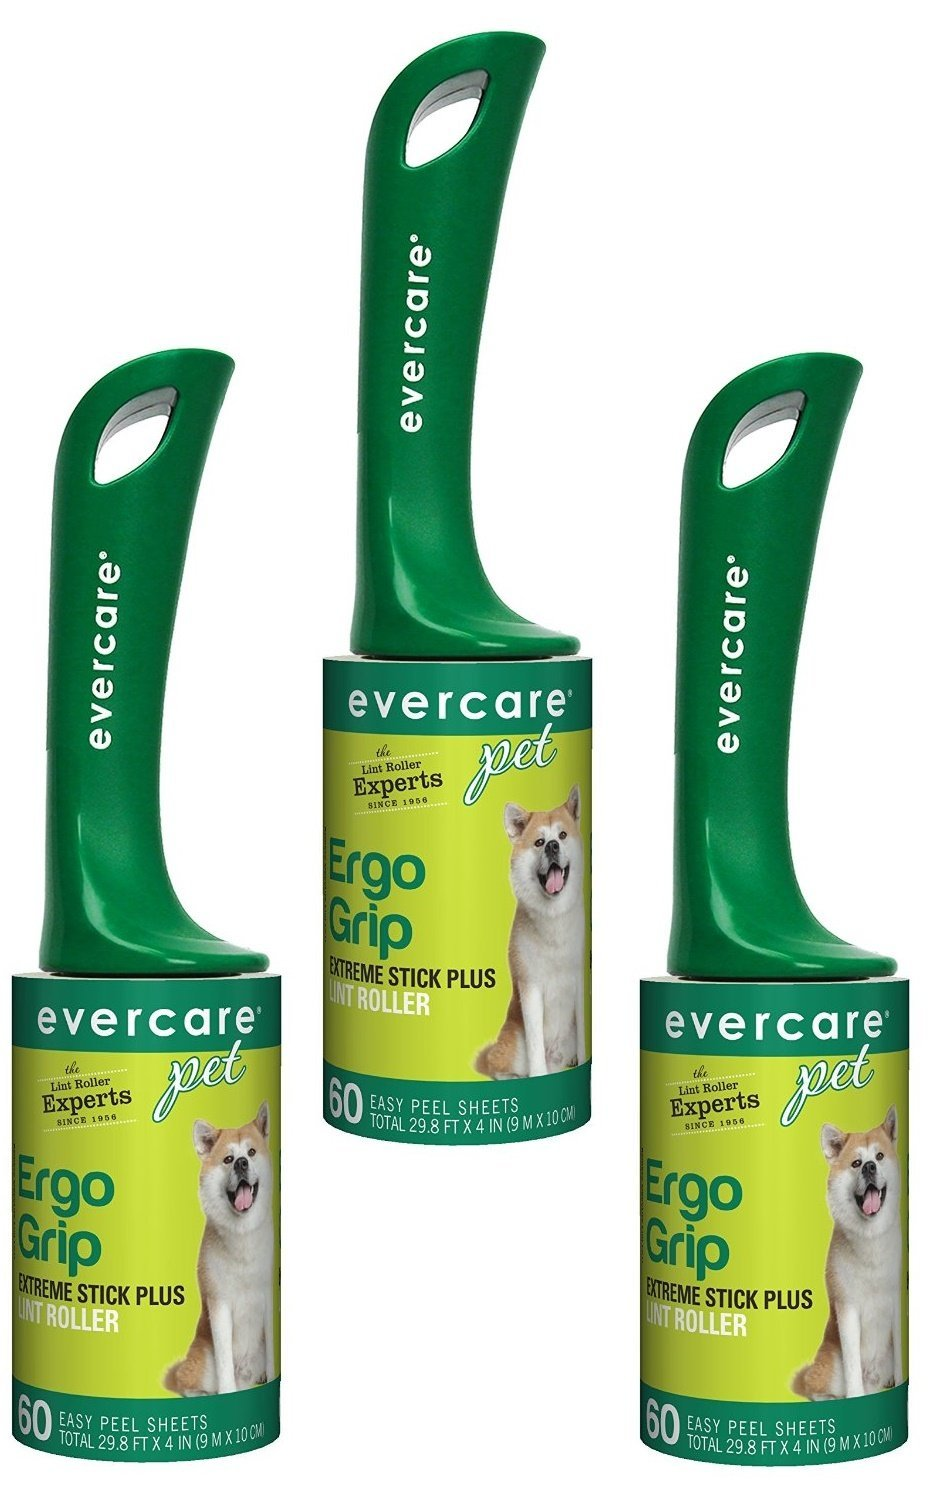 Evercare Extra-Sticky Pet Hair Rollers (3 Pack) by Evercare